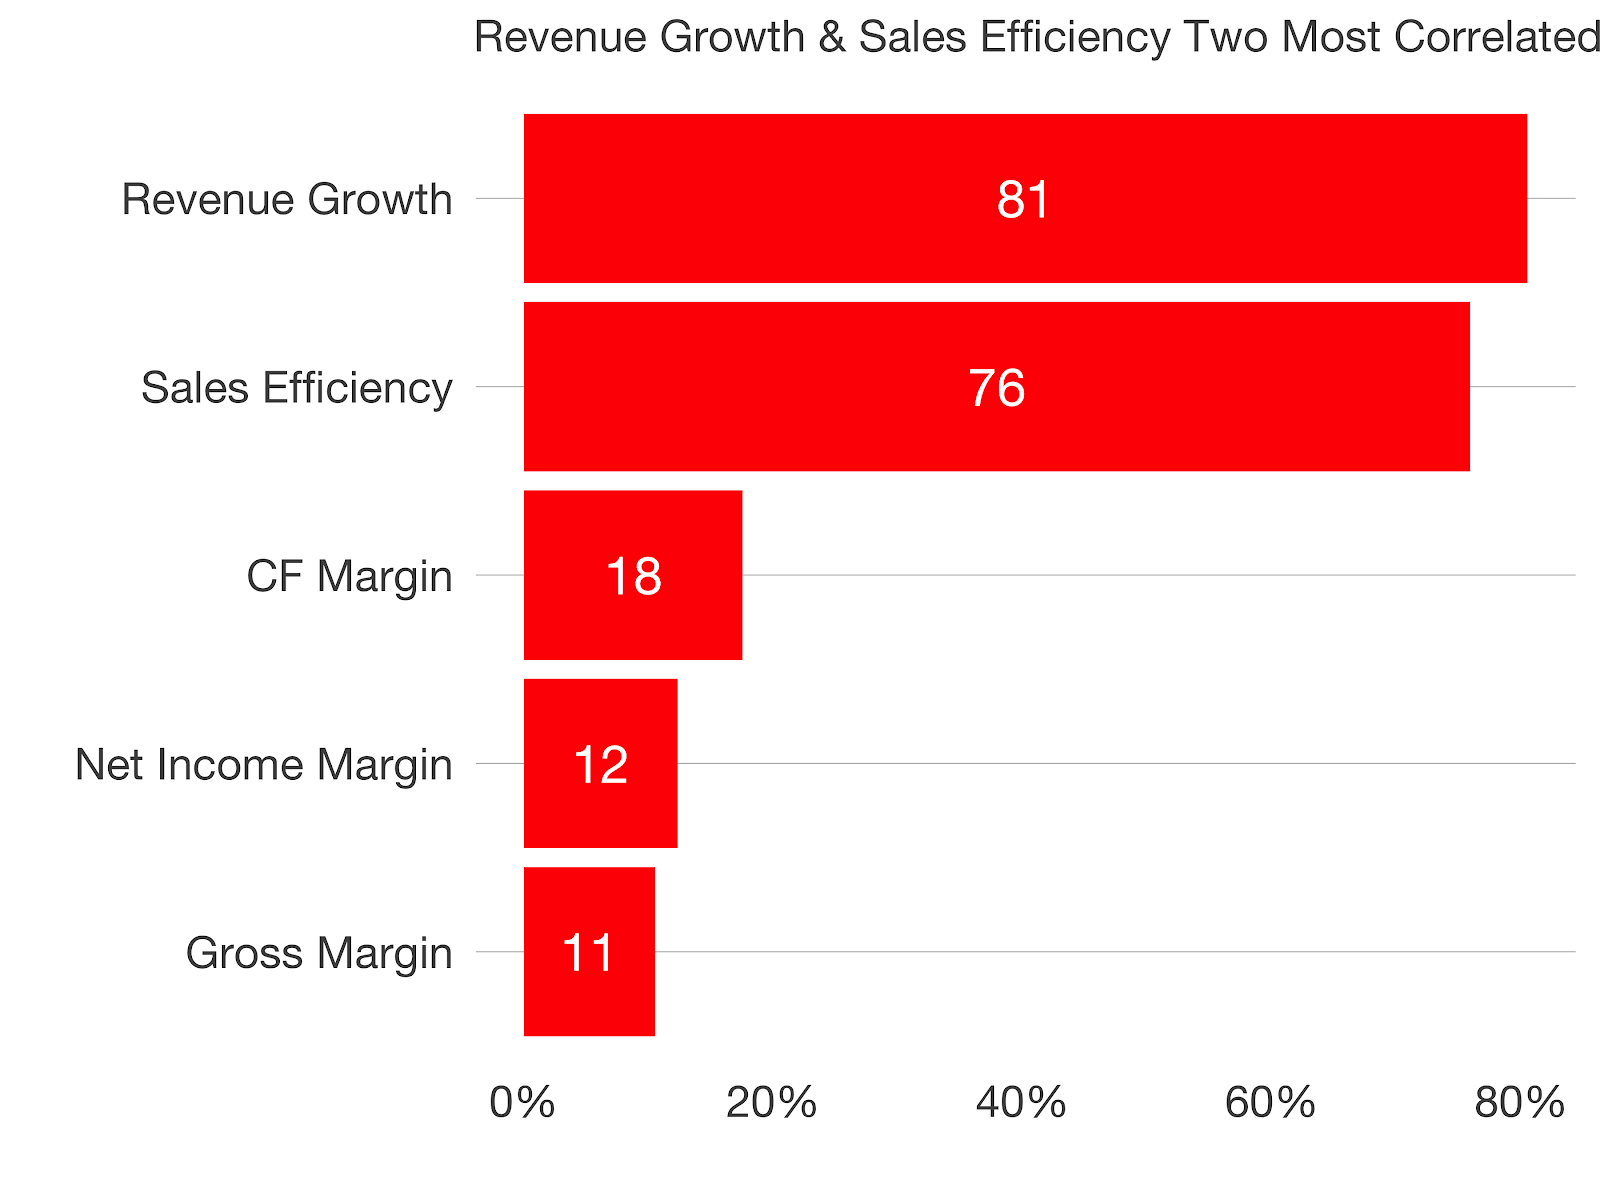 Revenue growth & Sales efficiency two most correlated factors to public SaaS valuations